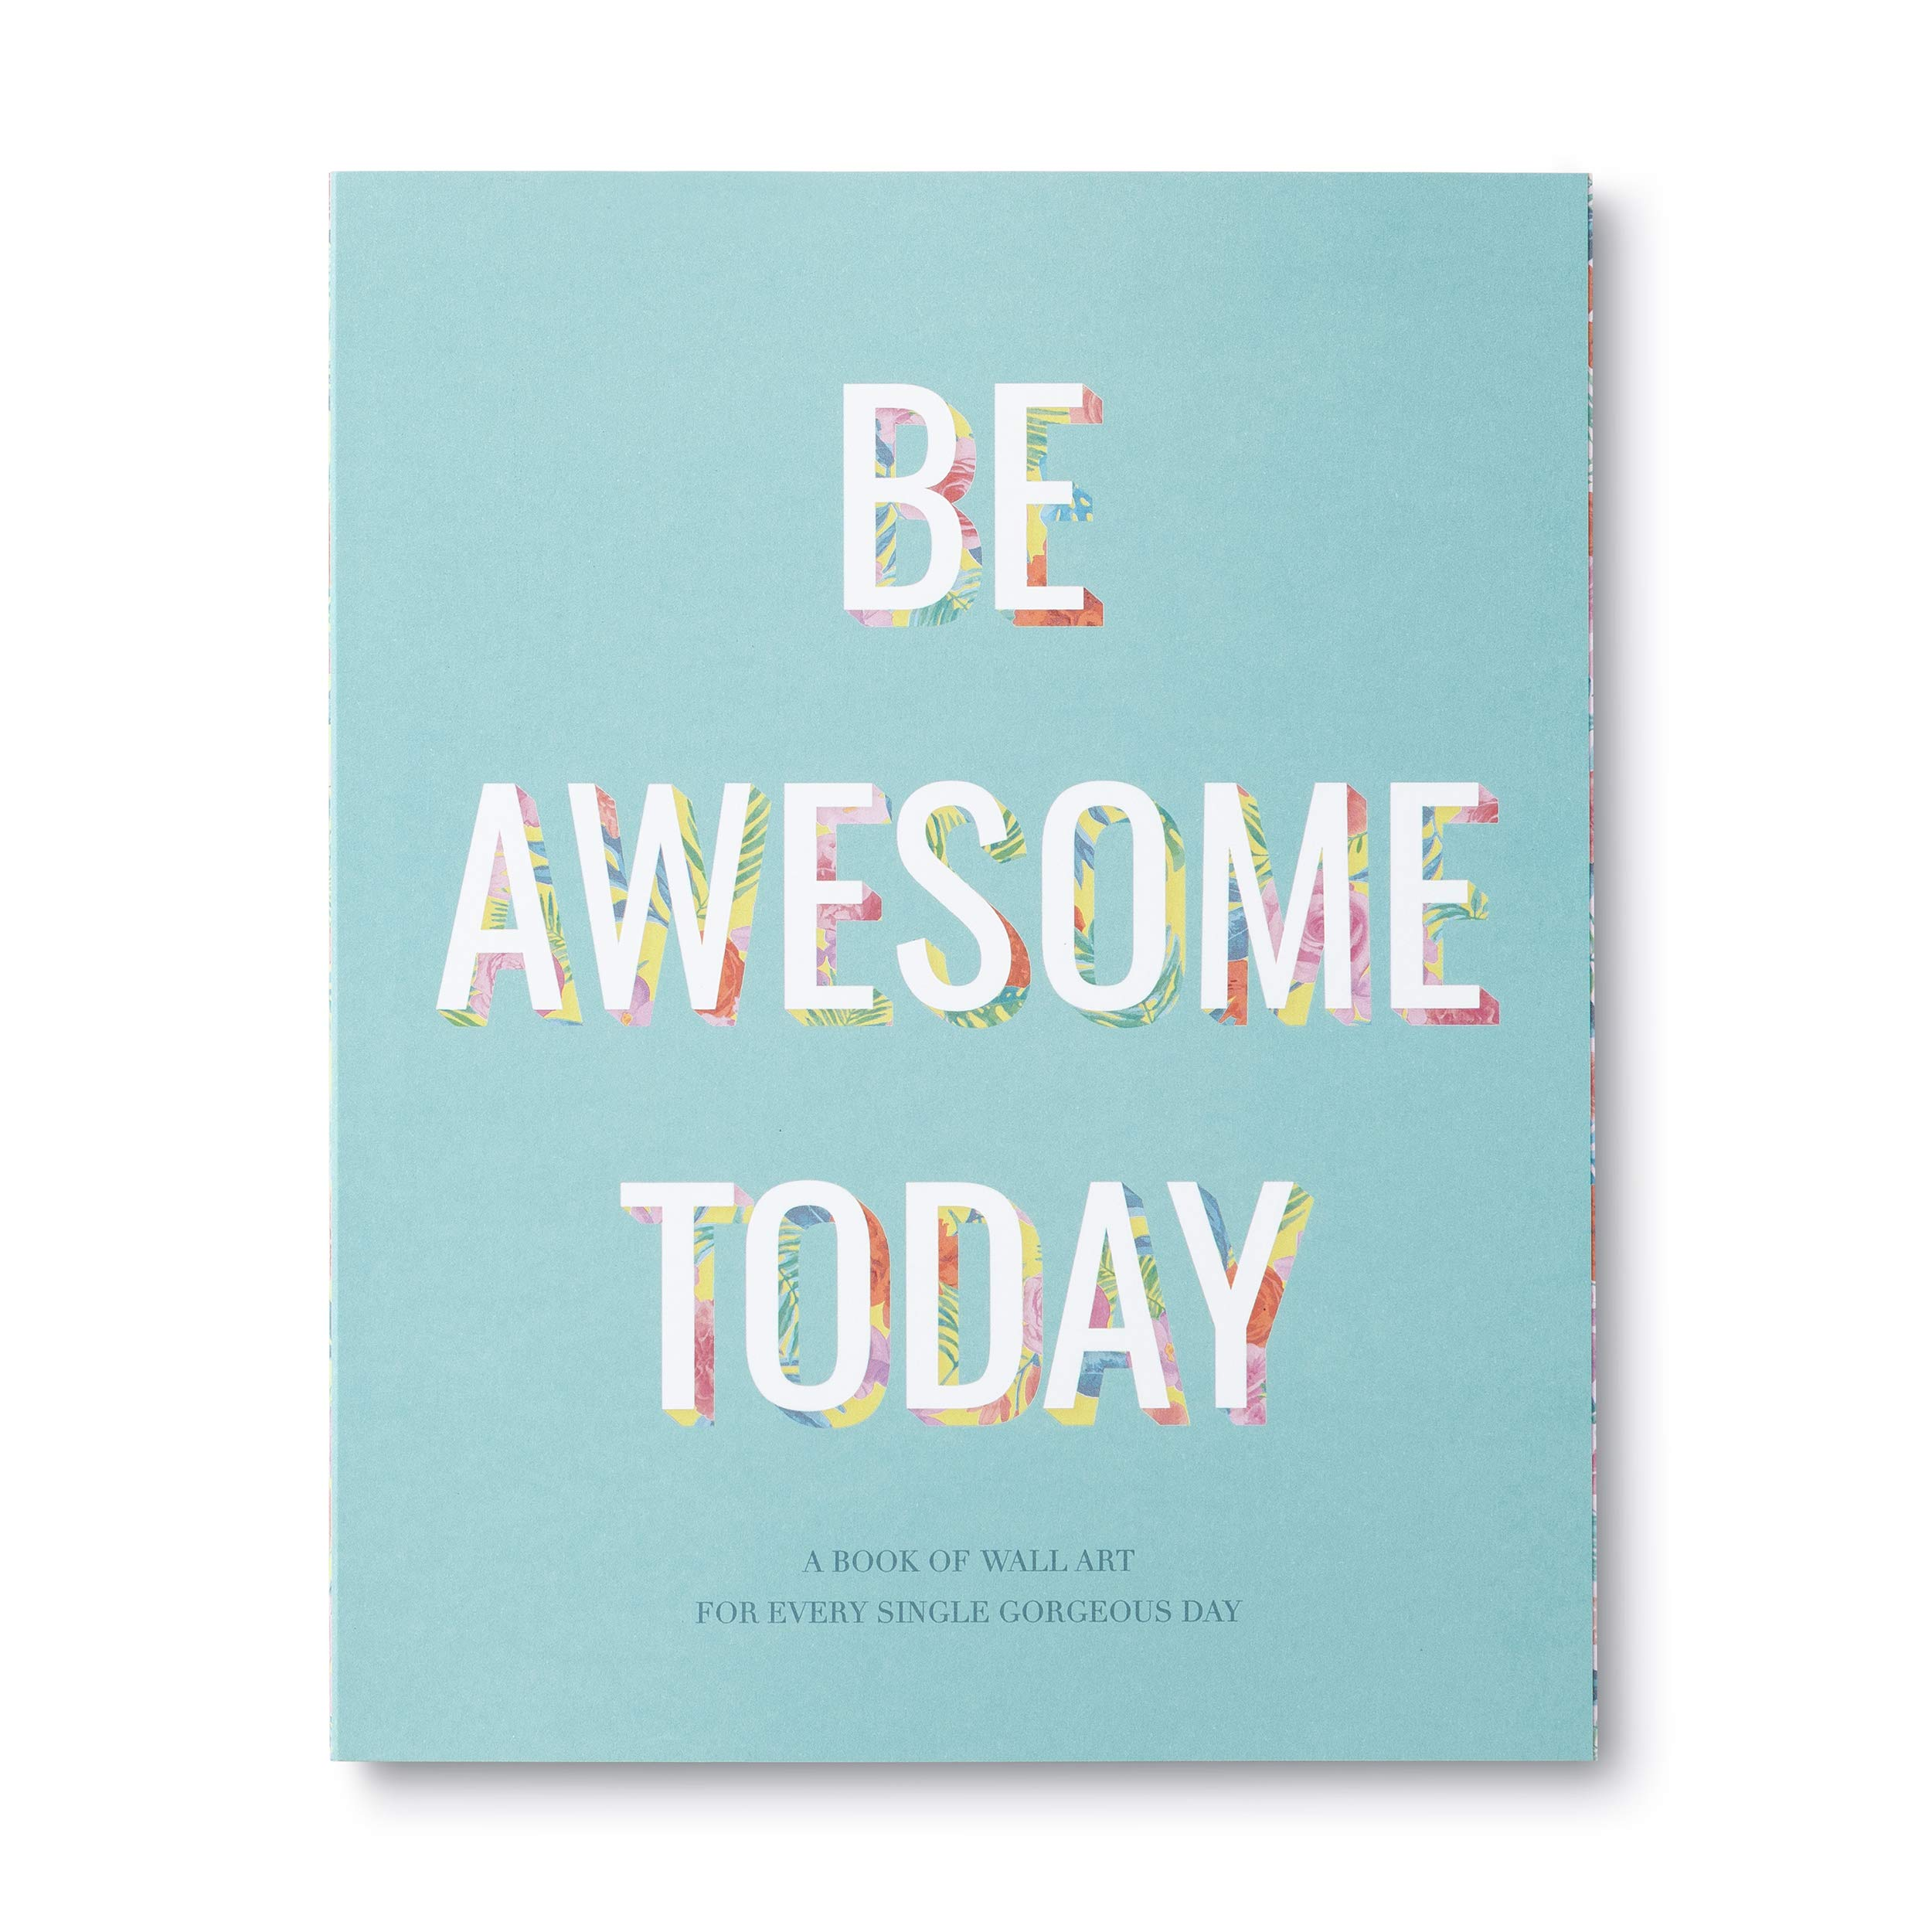 Be Awesome Today By Compendium Wall Art Poster Book 0749190060264 Books